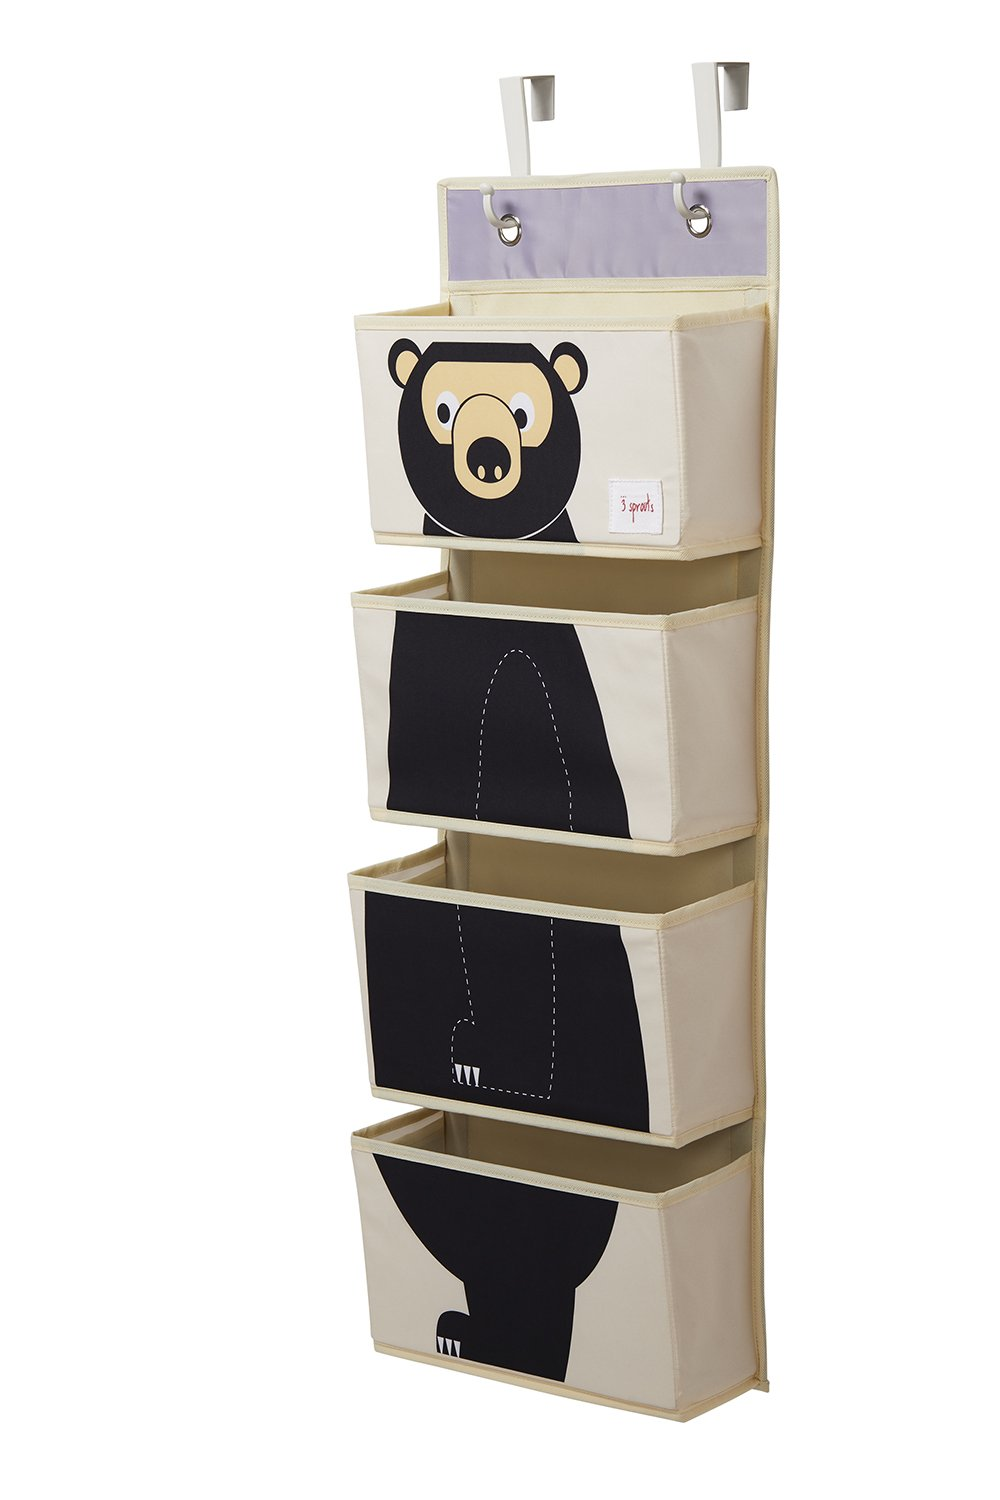 3 Sprouts Hanging Wall Organizer, Bear Black 1 Two Kids UWOBEA